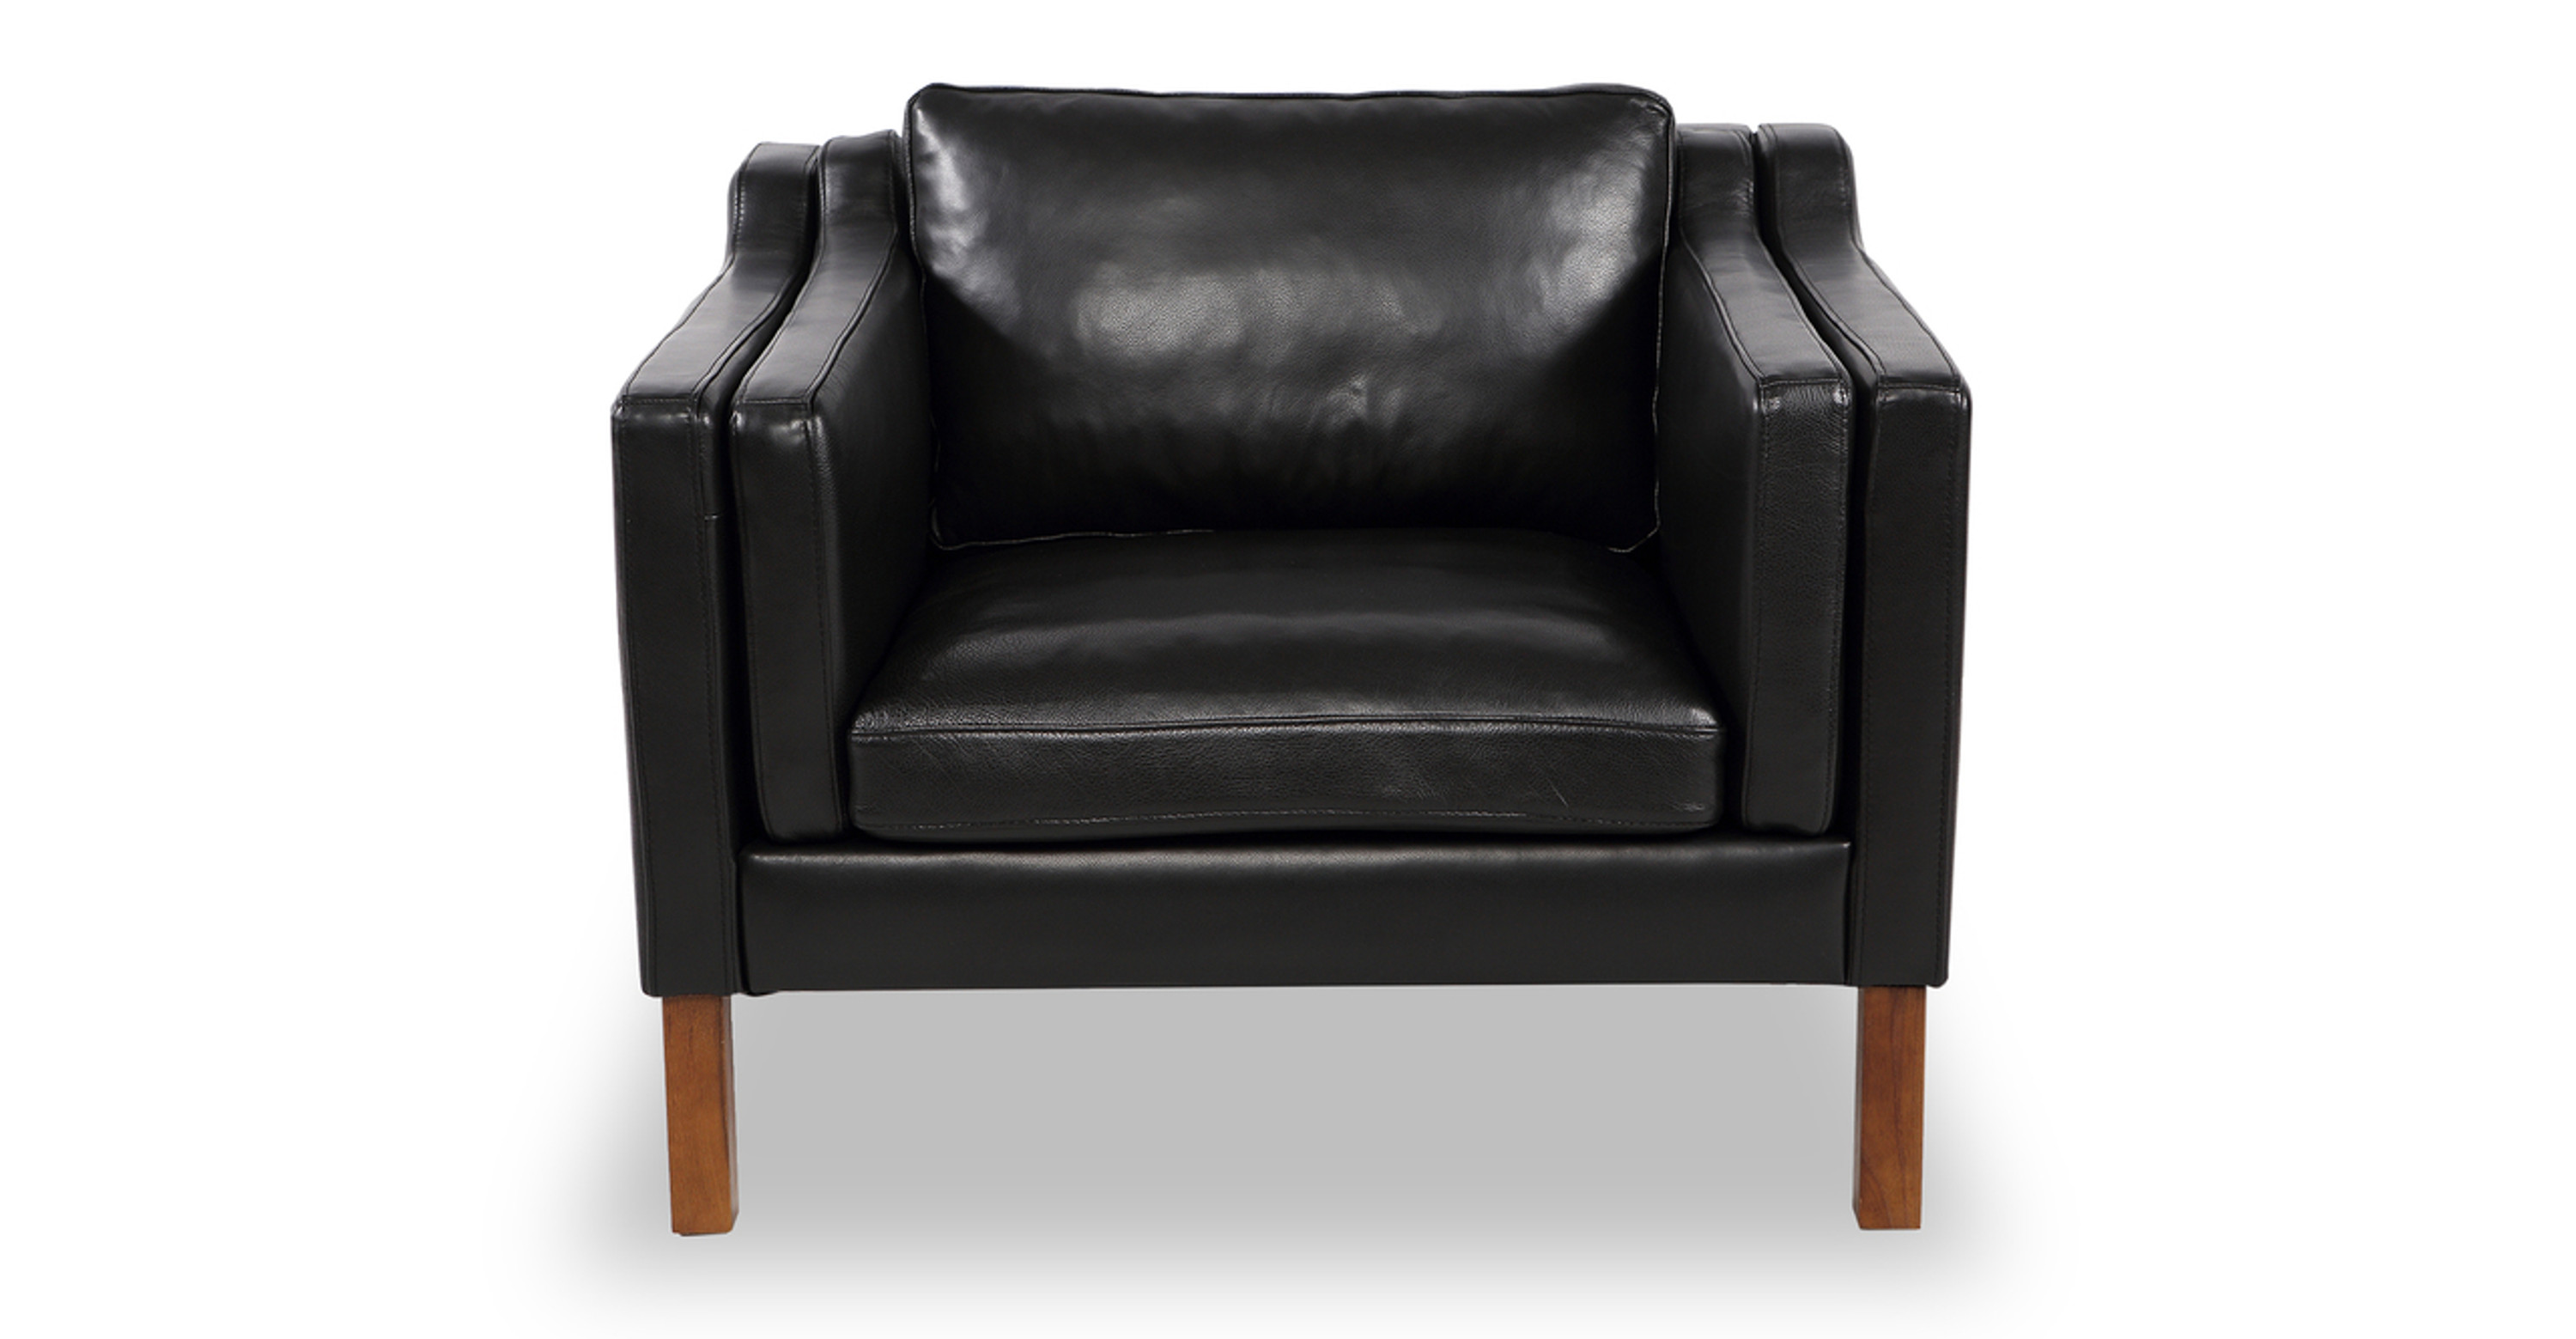 Remarkable Monroe Chair Black Aniline Leather Pdpeps Interior Chair Design Pdpepsorg